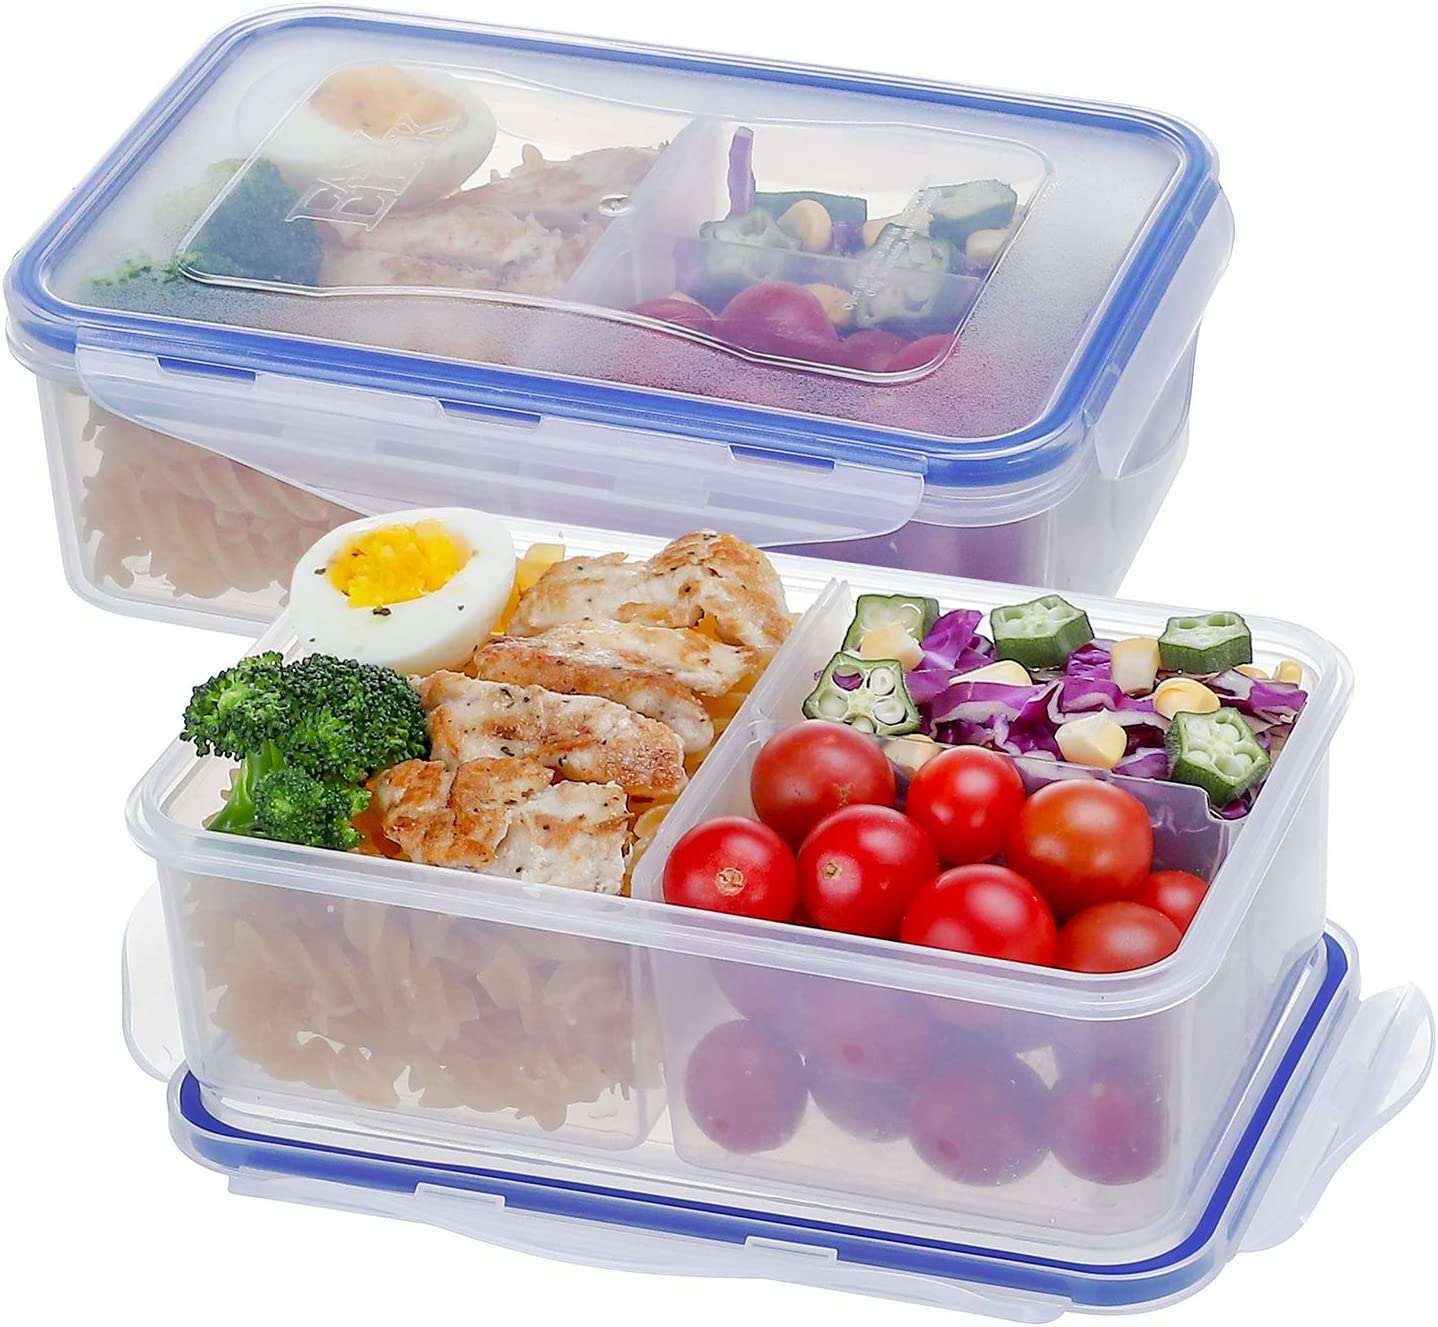 [2 Pack] Plastic Airtight Food Storage Containers BPA-Free 3 Compartment Bento Boxes Meal Prep Containers for Kitchen and Office,1150ML/38oz